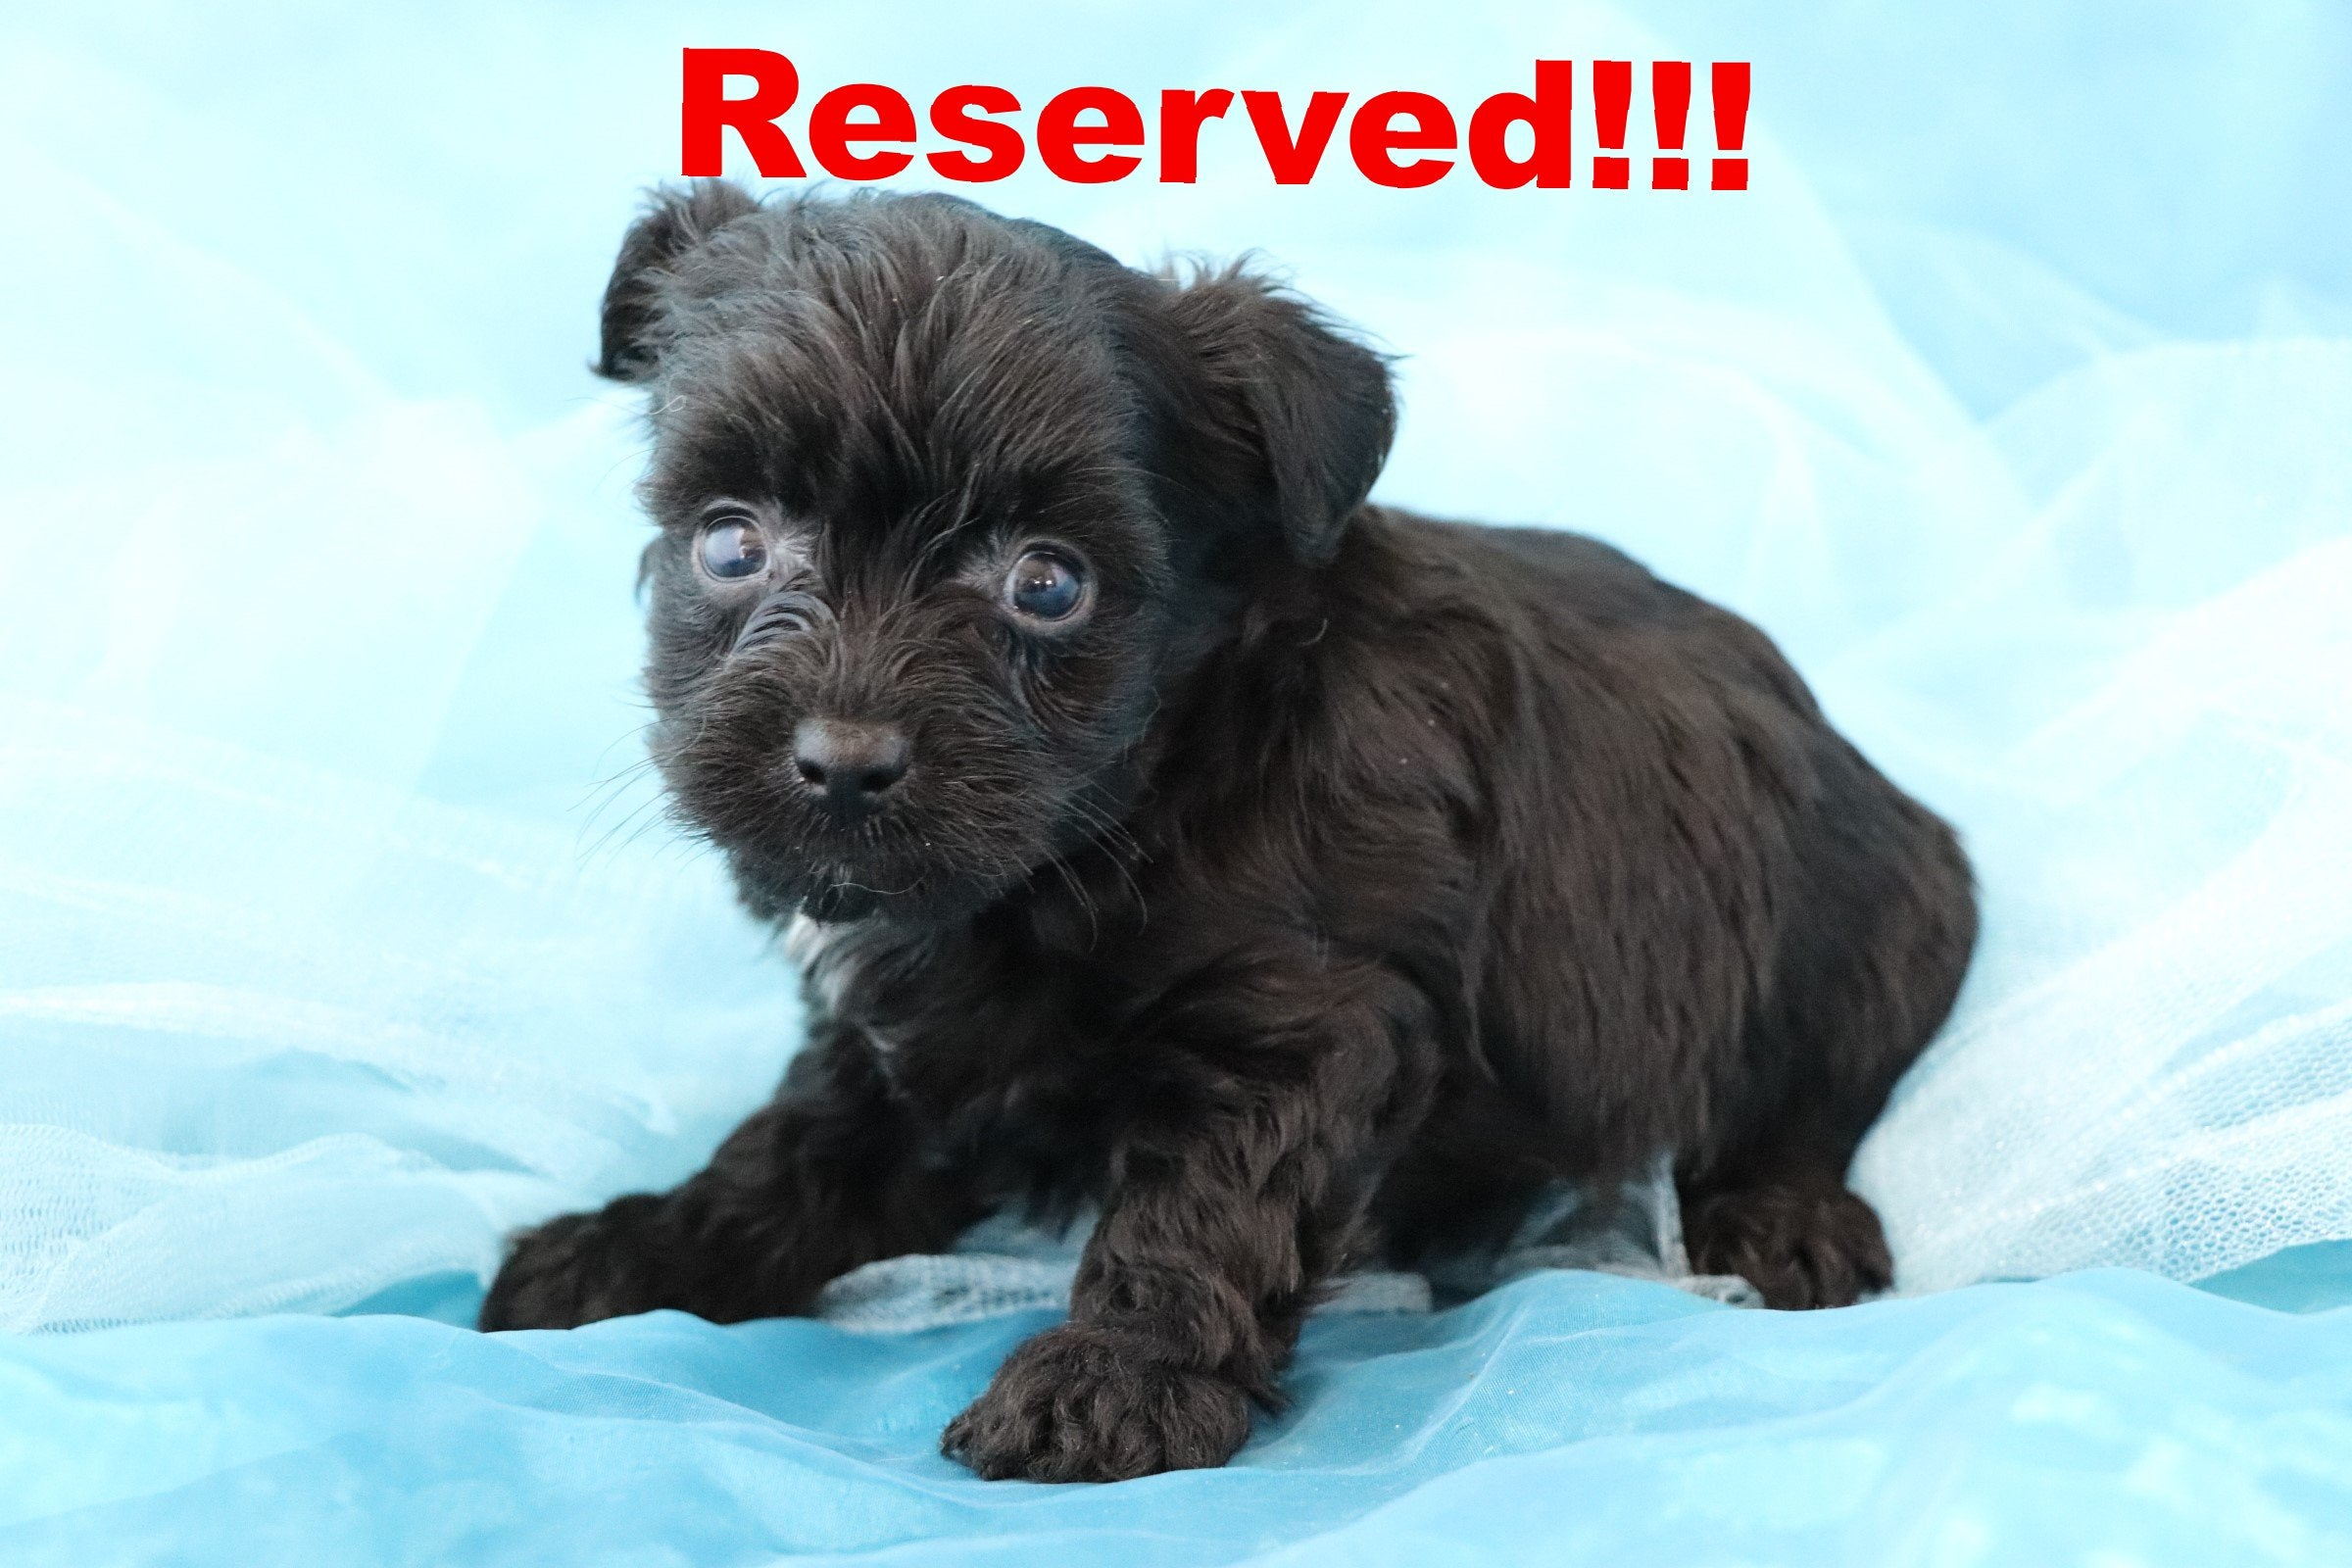 Pongo Male Teacup Yorkie Poo Puppy*